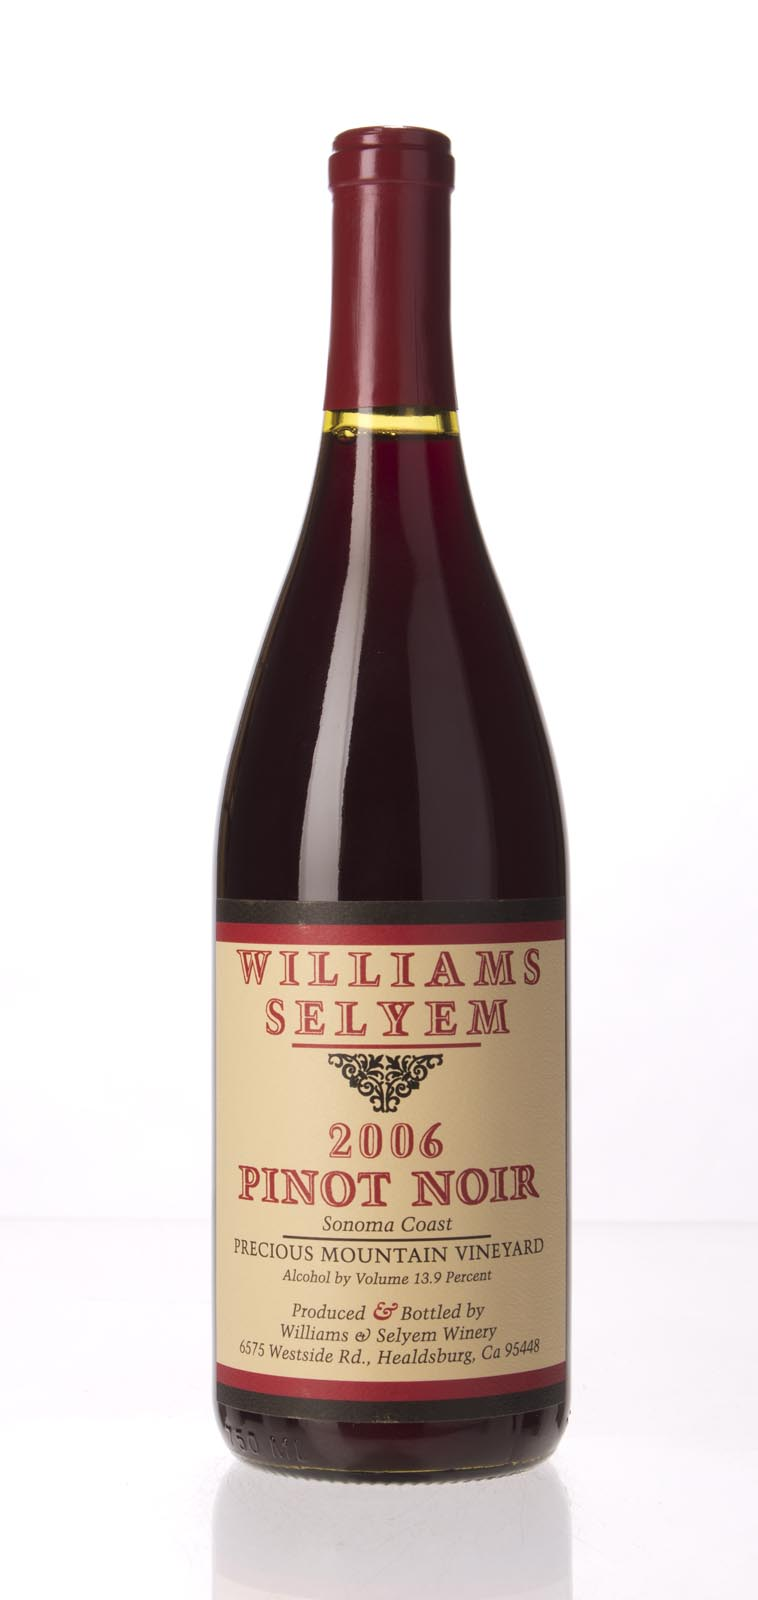 Williams Selyem Pinot Noir Precious Mountain Vineyard 2006, 750mL (ST94) from The BPW - Merchants of rare and fine wines.